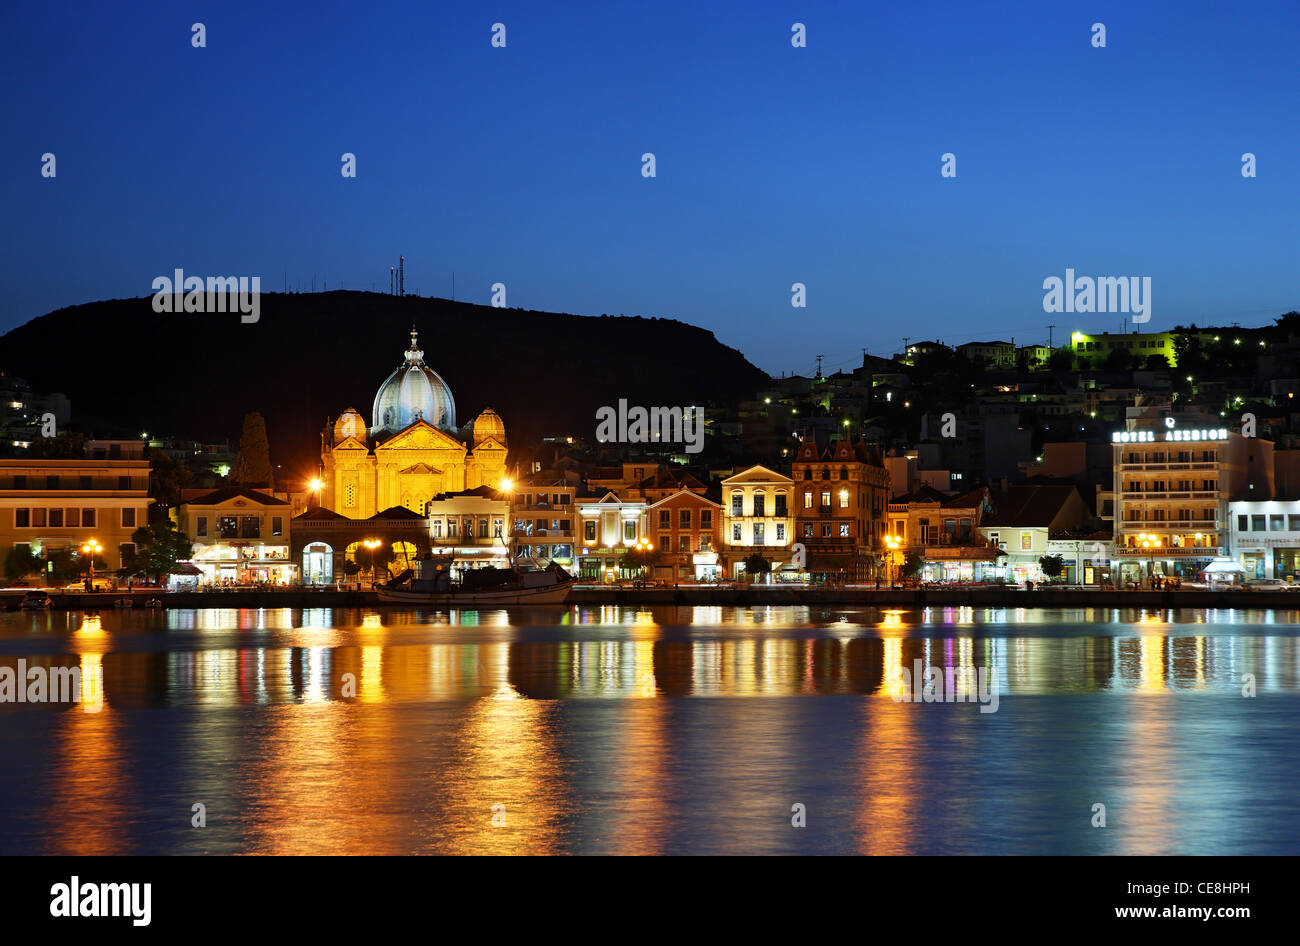 Partial night view of the port of Mytilene town, capital of Lesvos island, Northern Aegean, Greece. - Stock Image